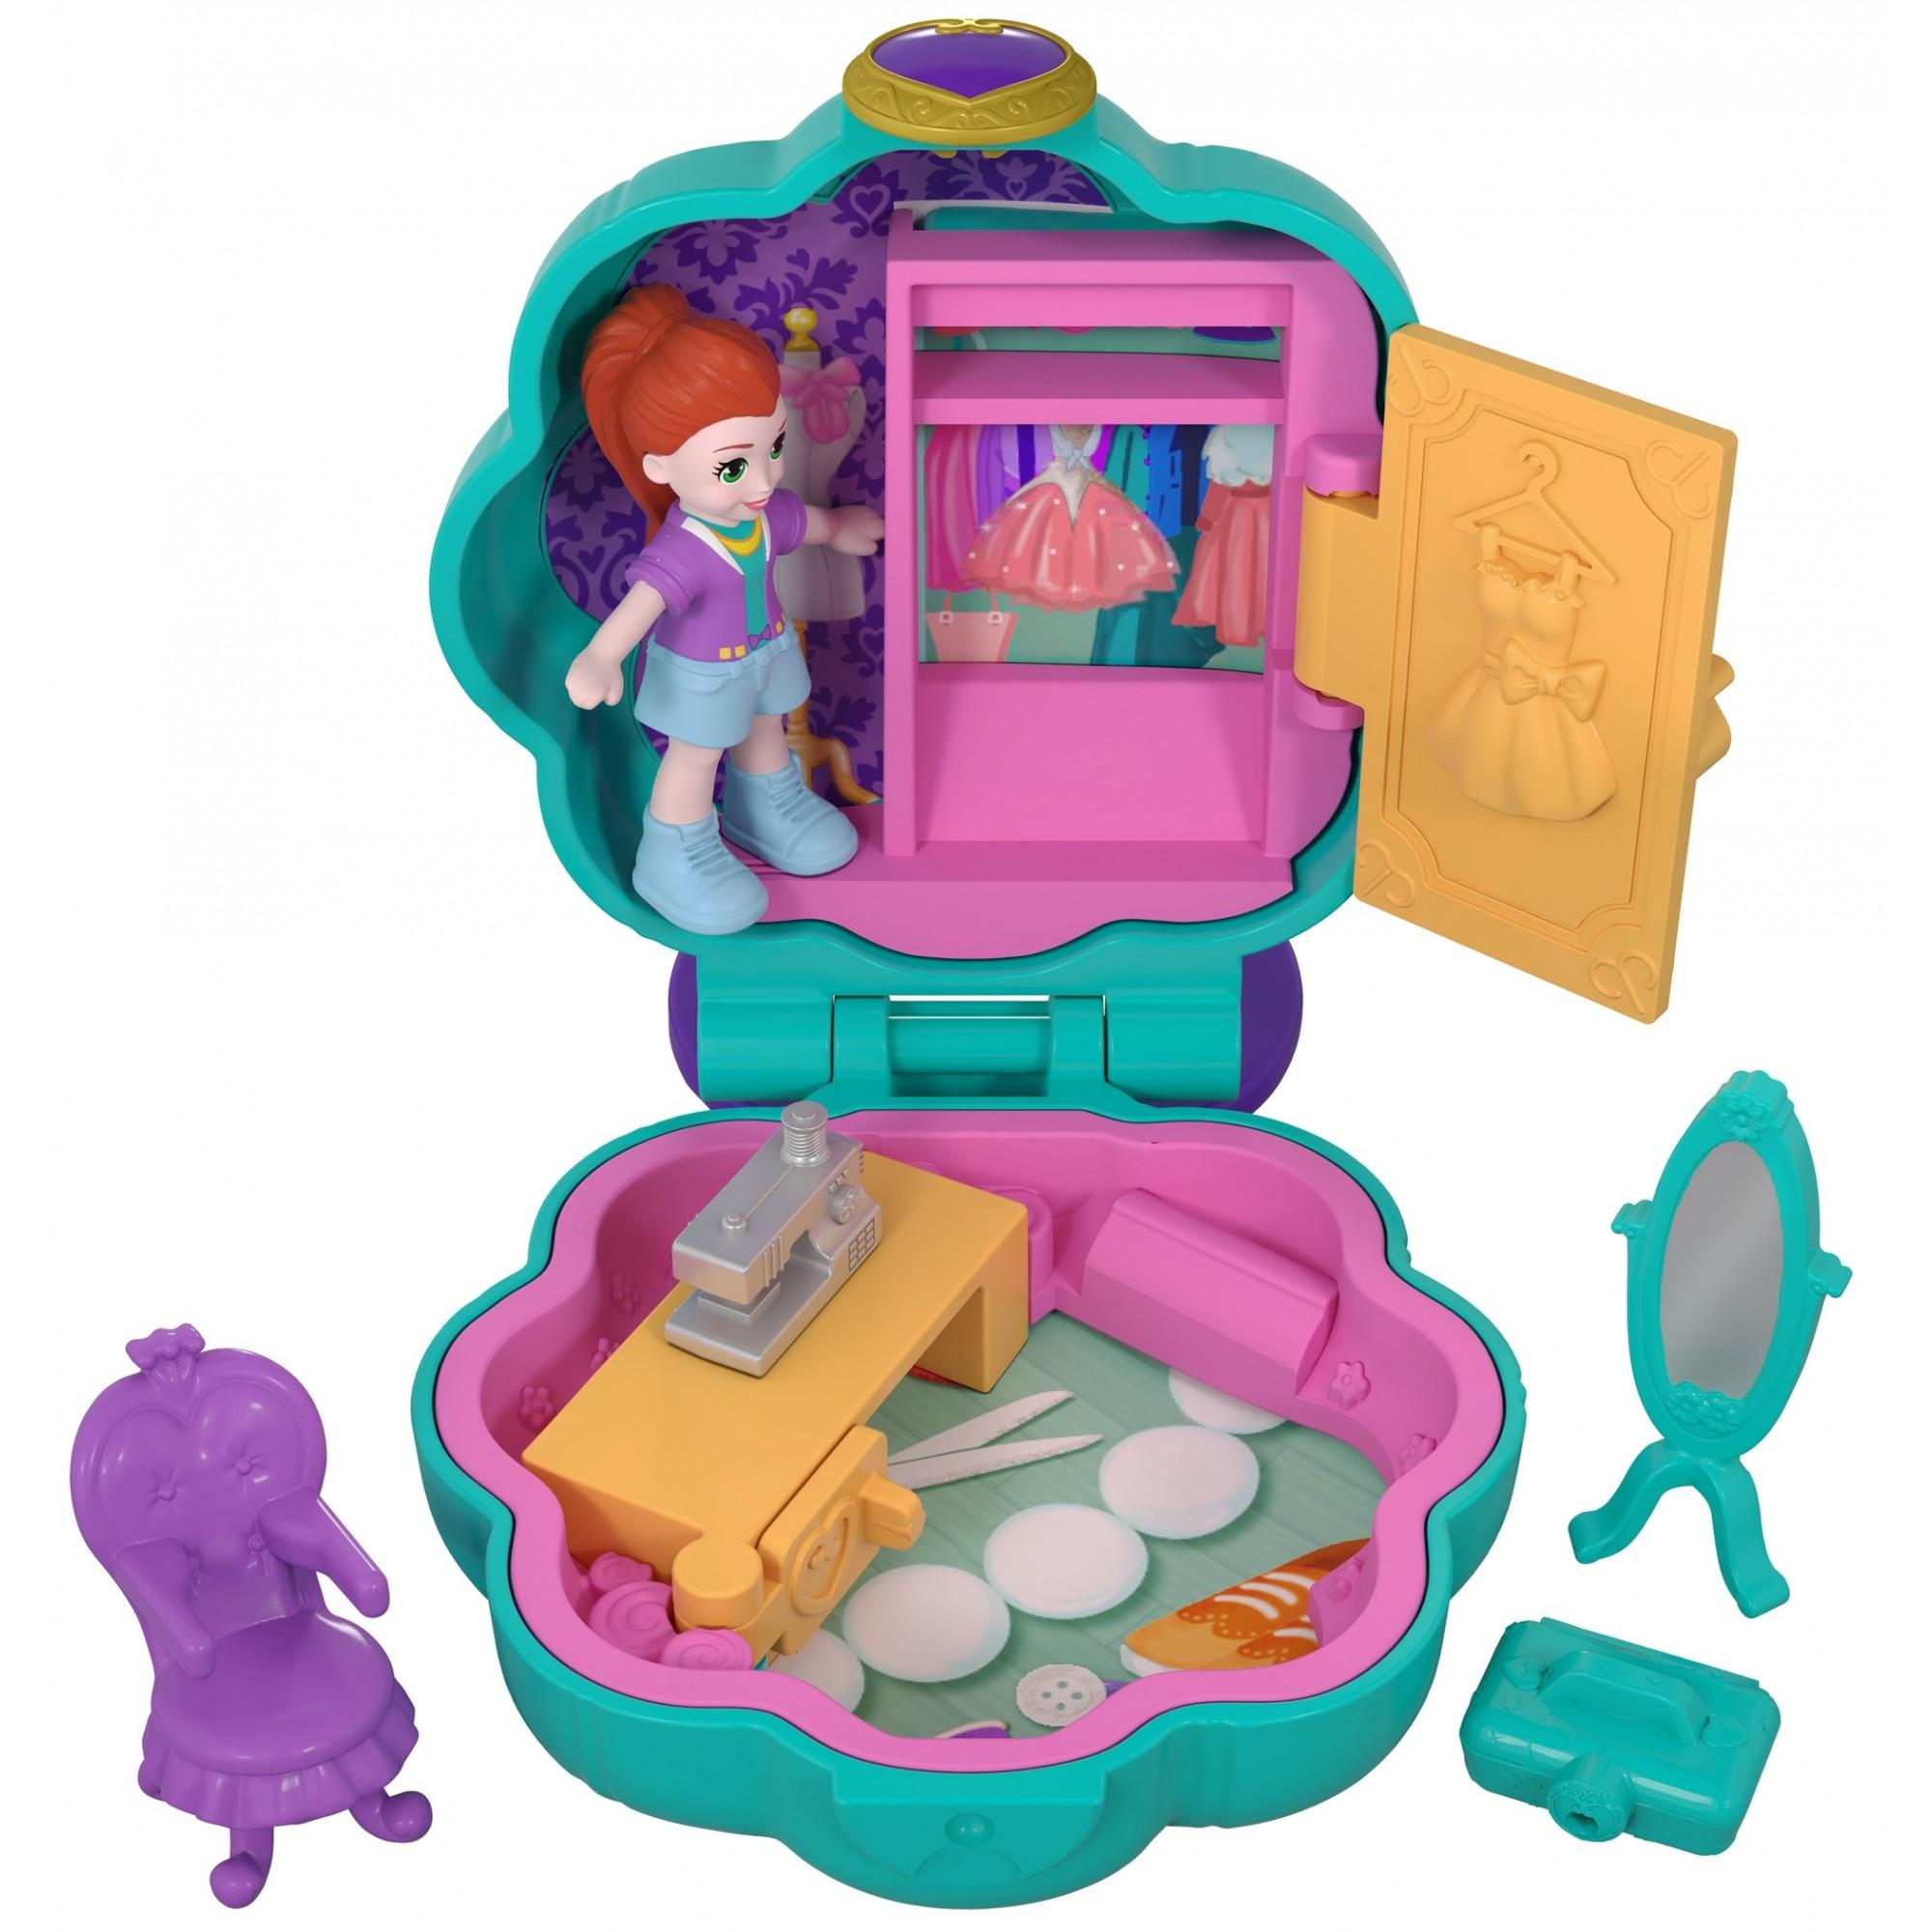 Polly Pocket Tiny Pocket Places Fiercely Fab Studio Compact with Micro Model Lila Doll